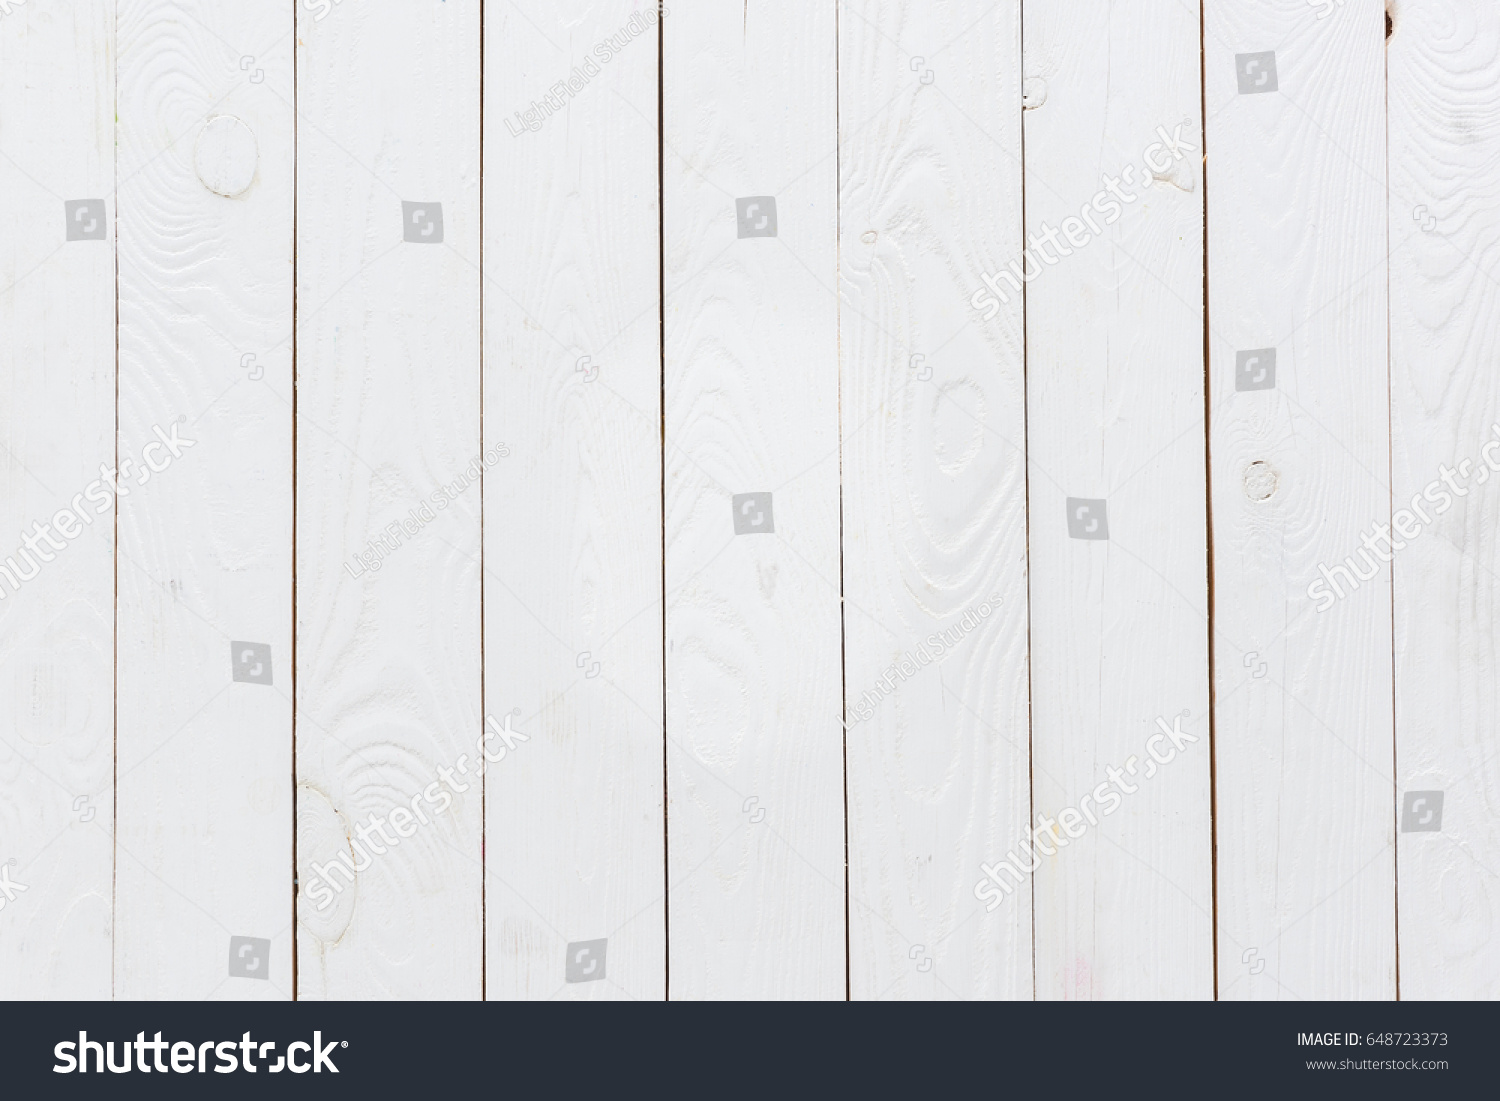 stock-photo-textured-empty-white-wooden-background-with-copy-space-648723373.jpg (1500×1101)